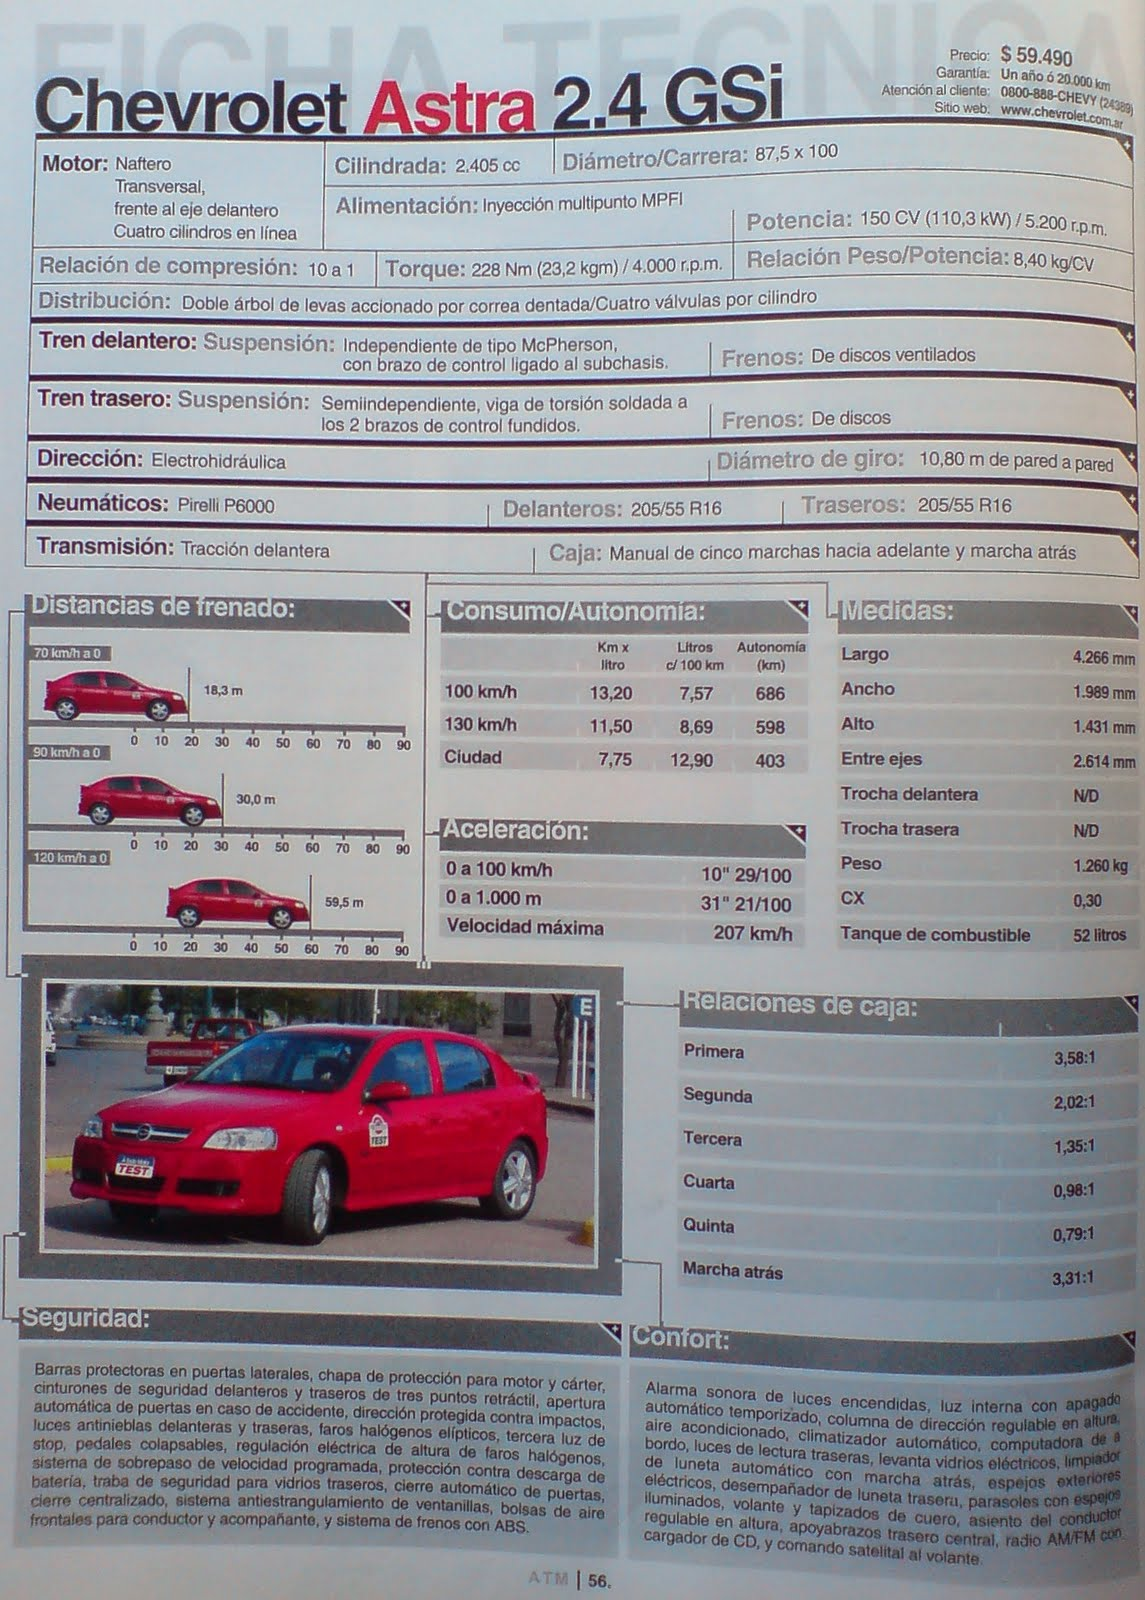 Chevrolet discount coupons